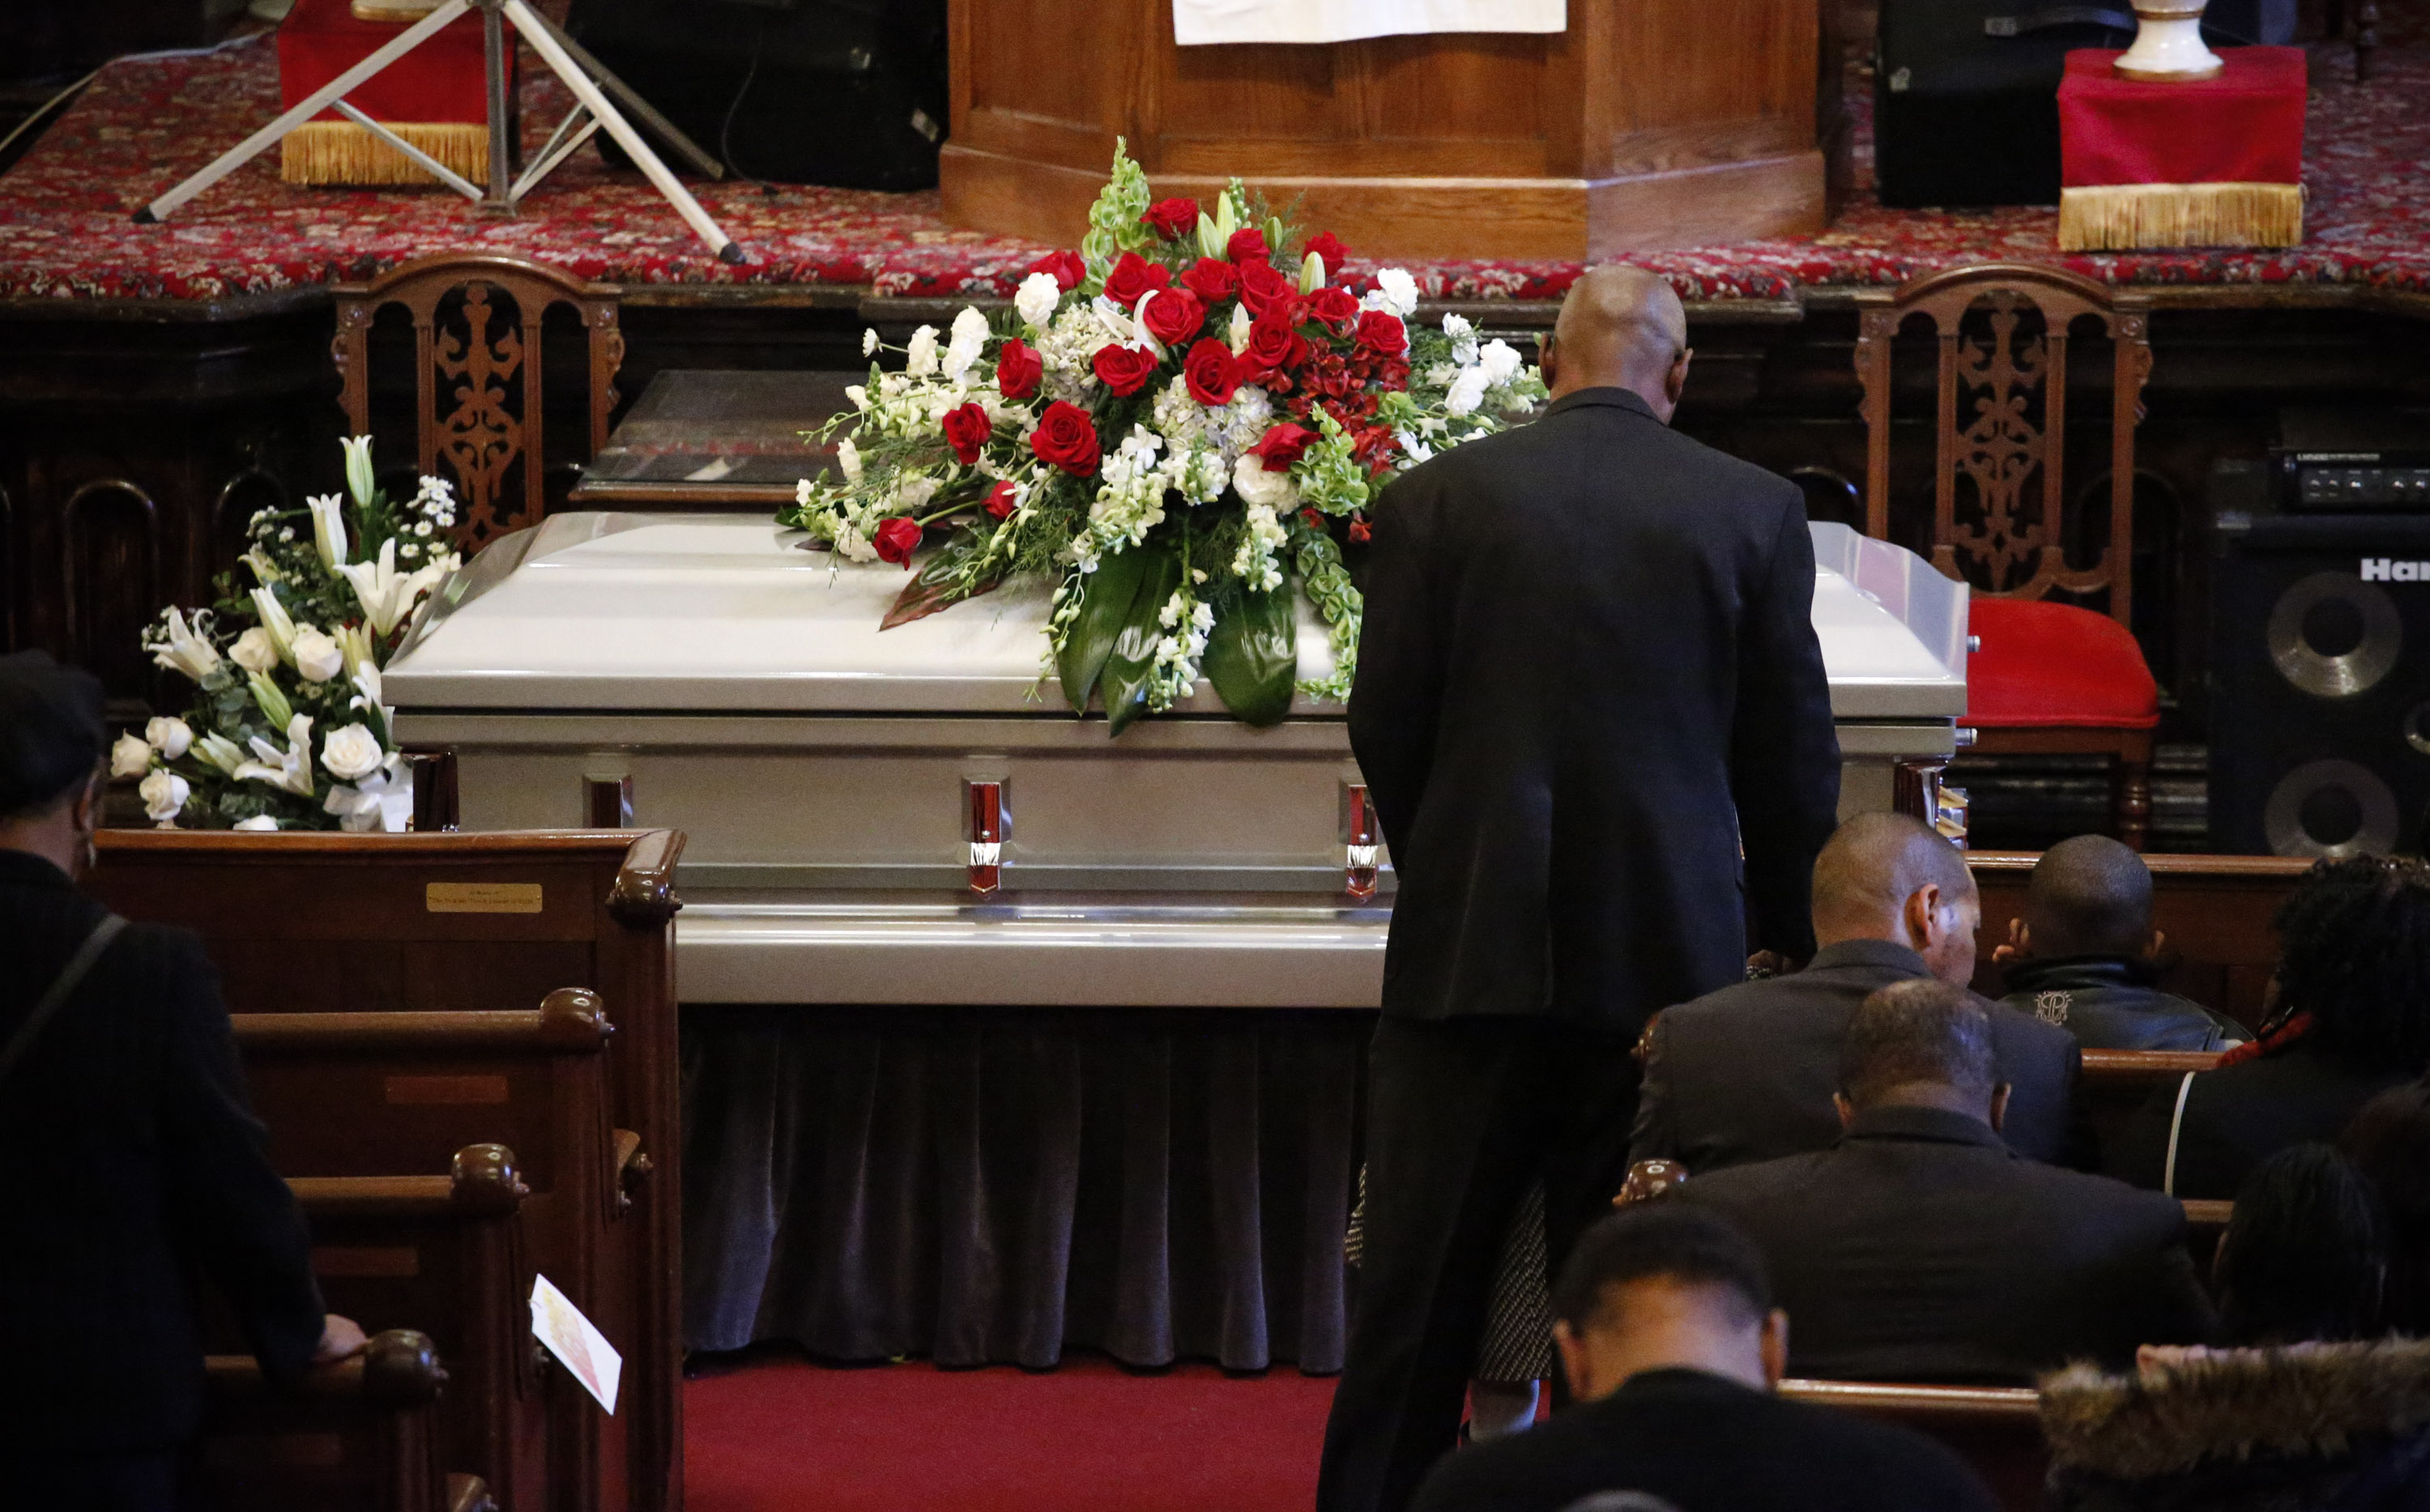 The casket of Akai Gurley at his funeral. (Photo by Kena Betancur/Getty Images)